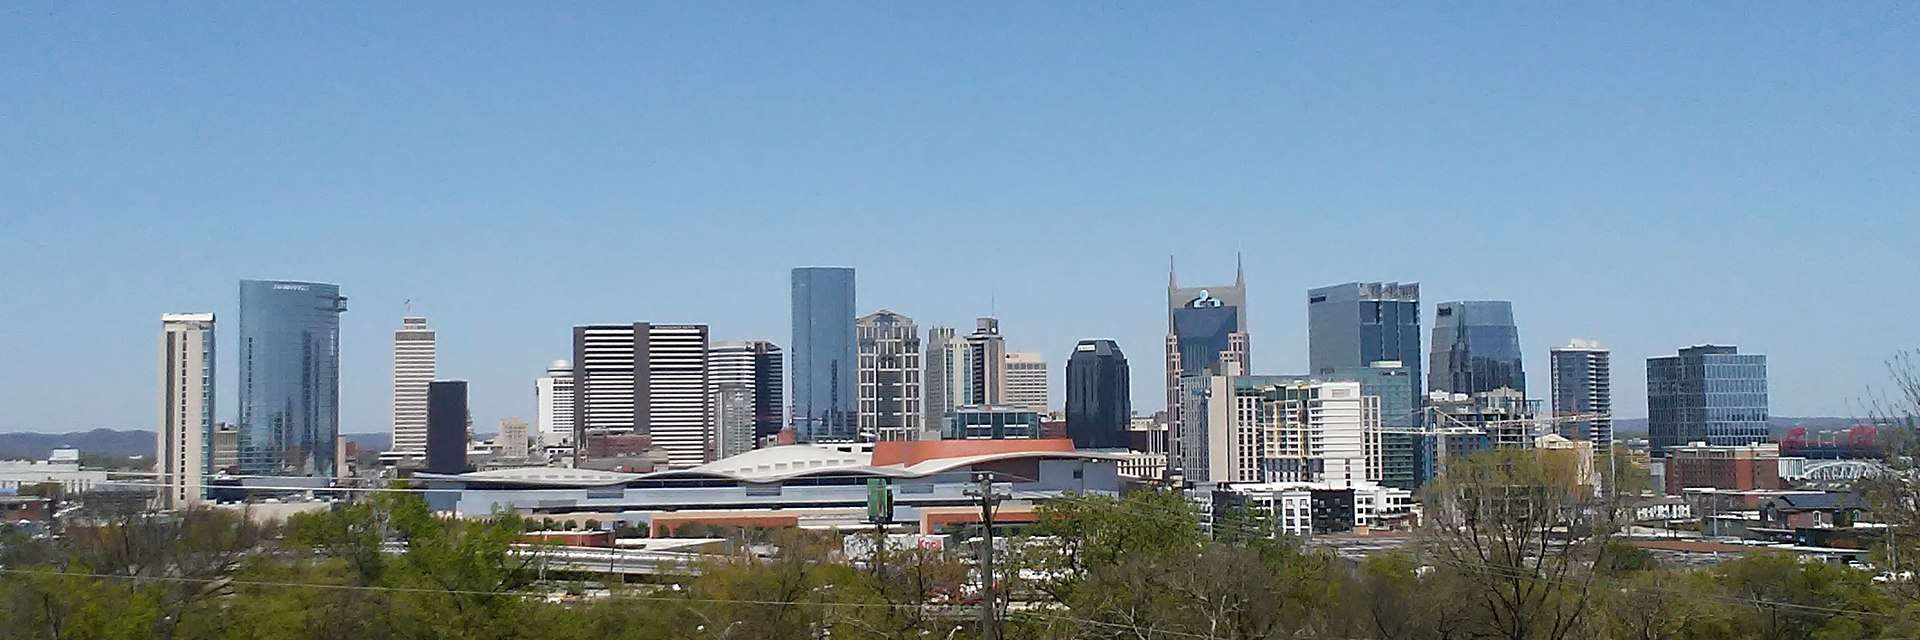 The Nashville skyline in 2018, home of country music, music facts